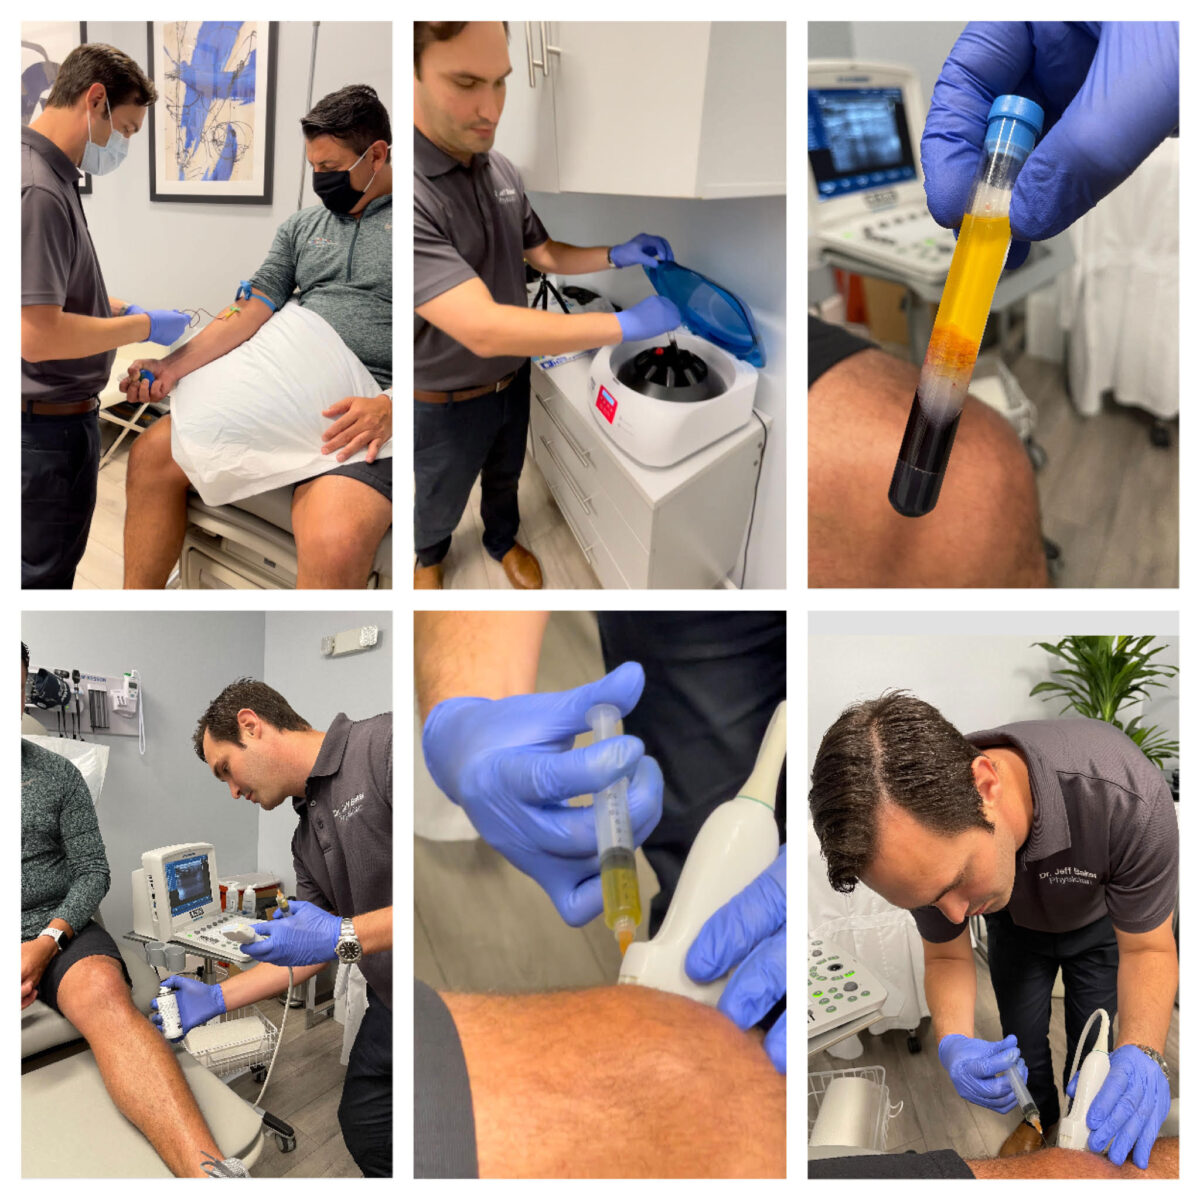 acl-therapy-doc-1200x1200.jpg